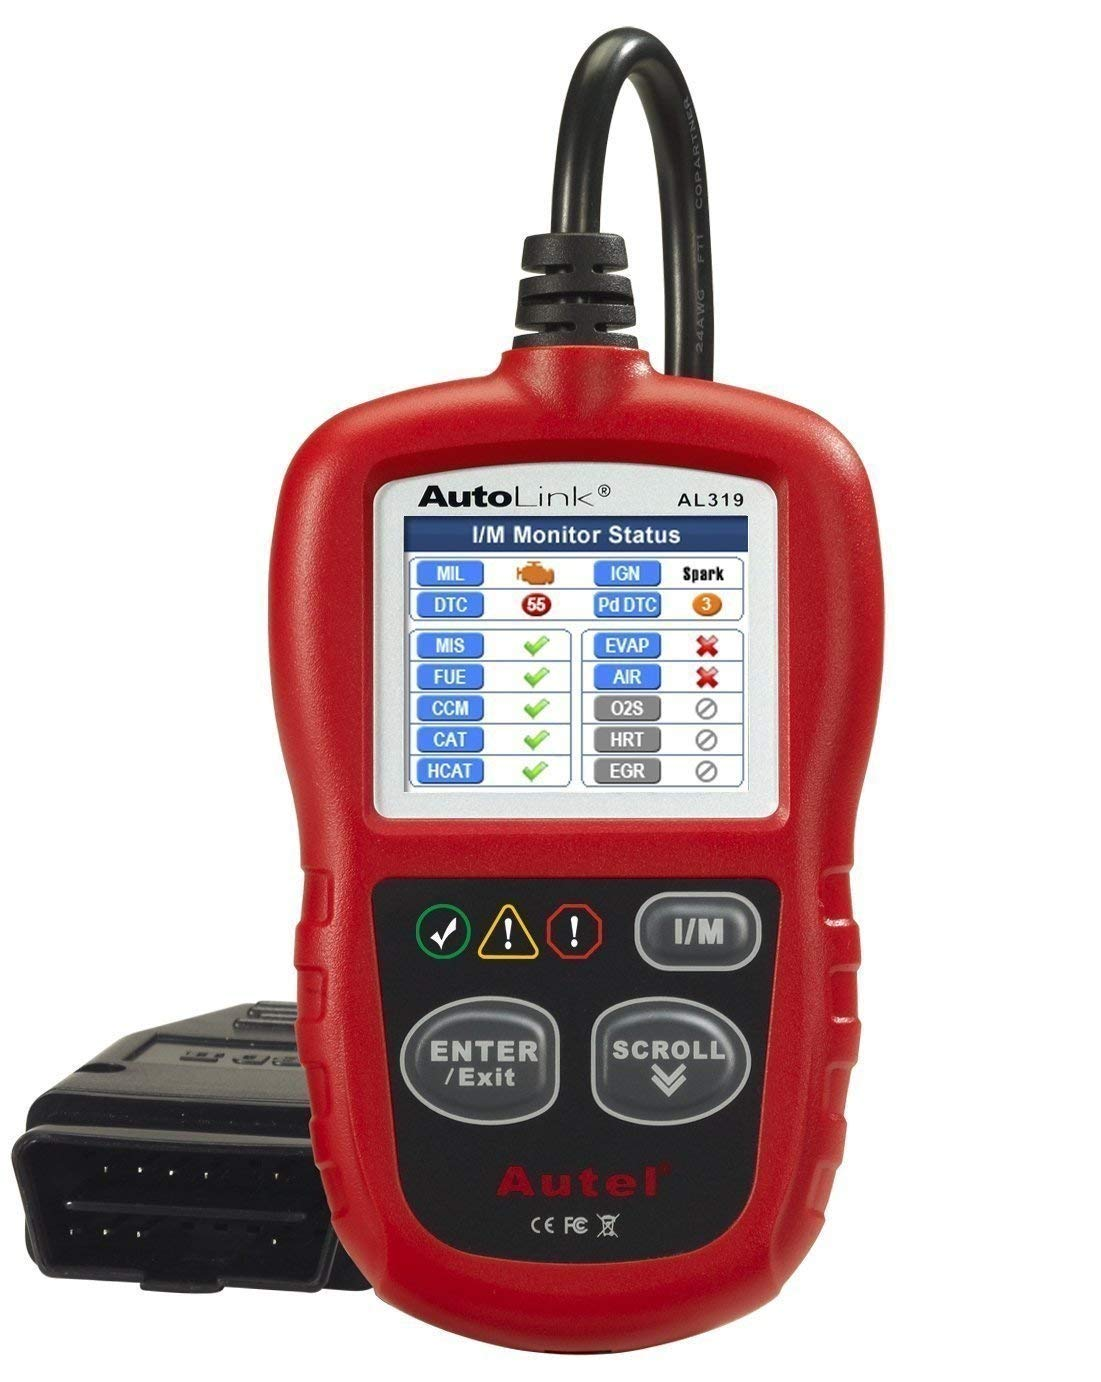 Autel AL319 Code Reader Engine Fault CAN Scan Tool Check Engine Light One-Click I/M Readiness